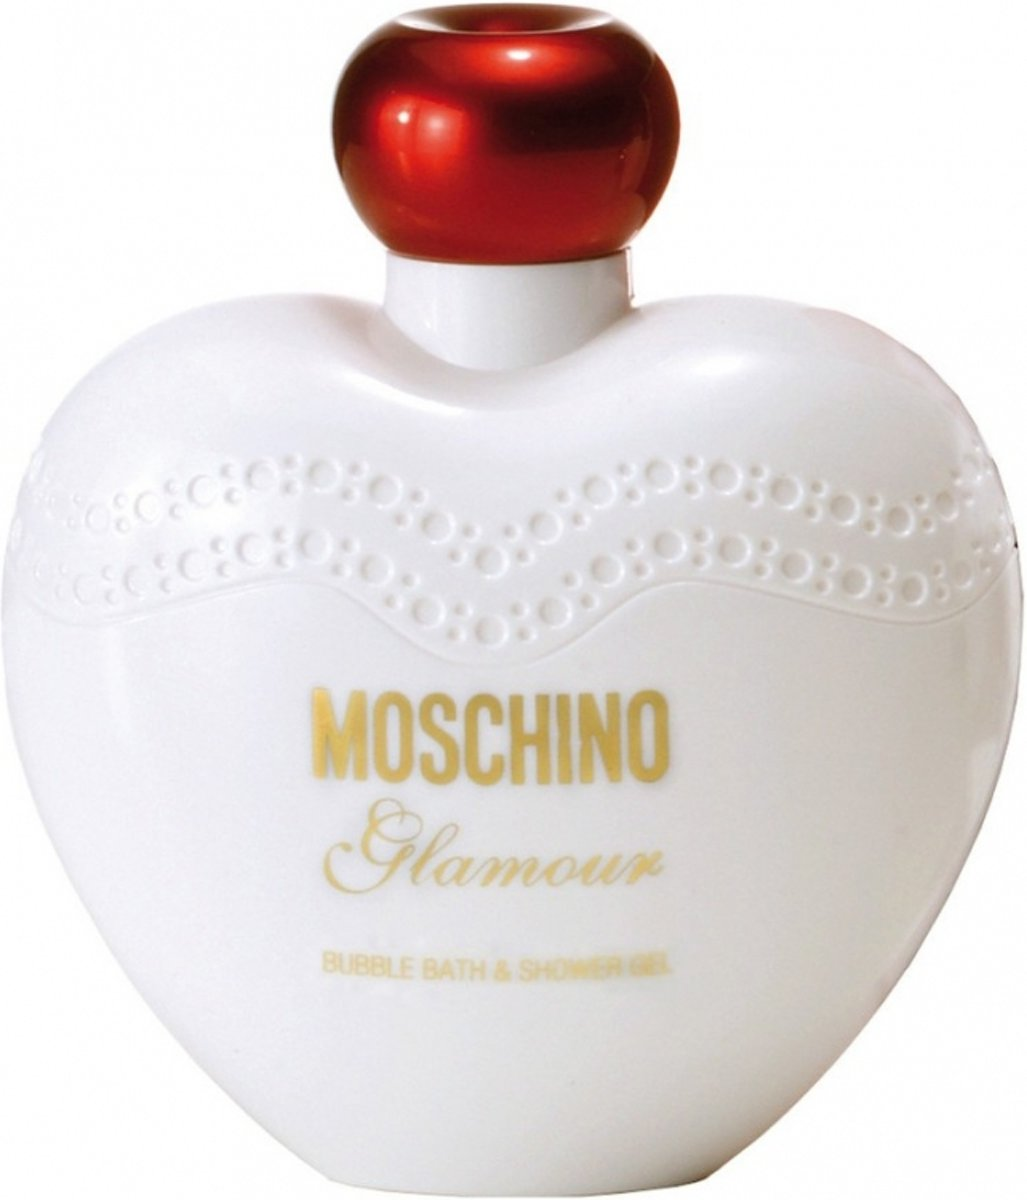 Moschino Glamour Douchegel 200 ml